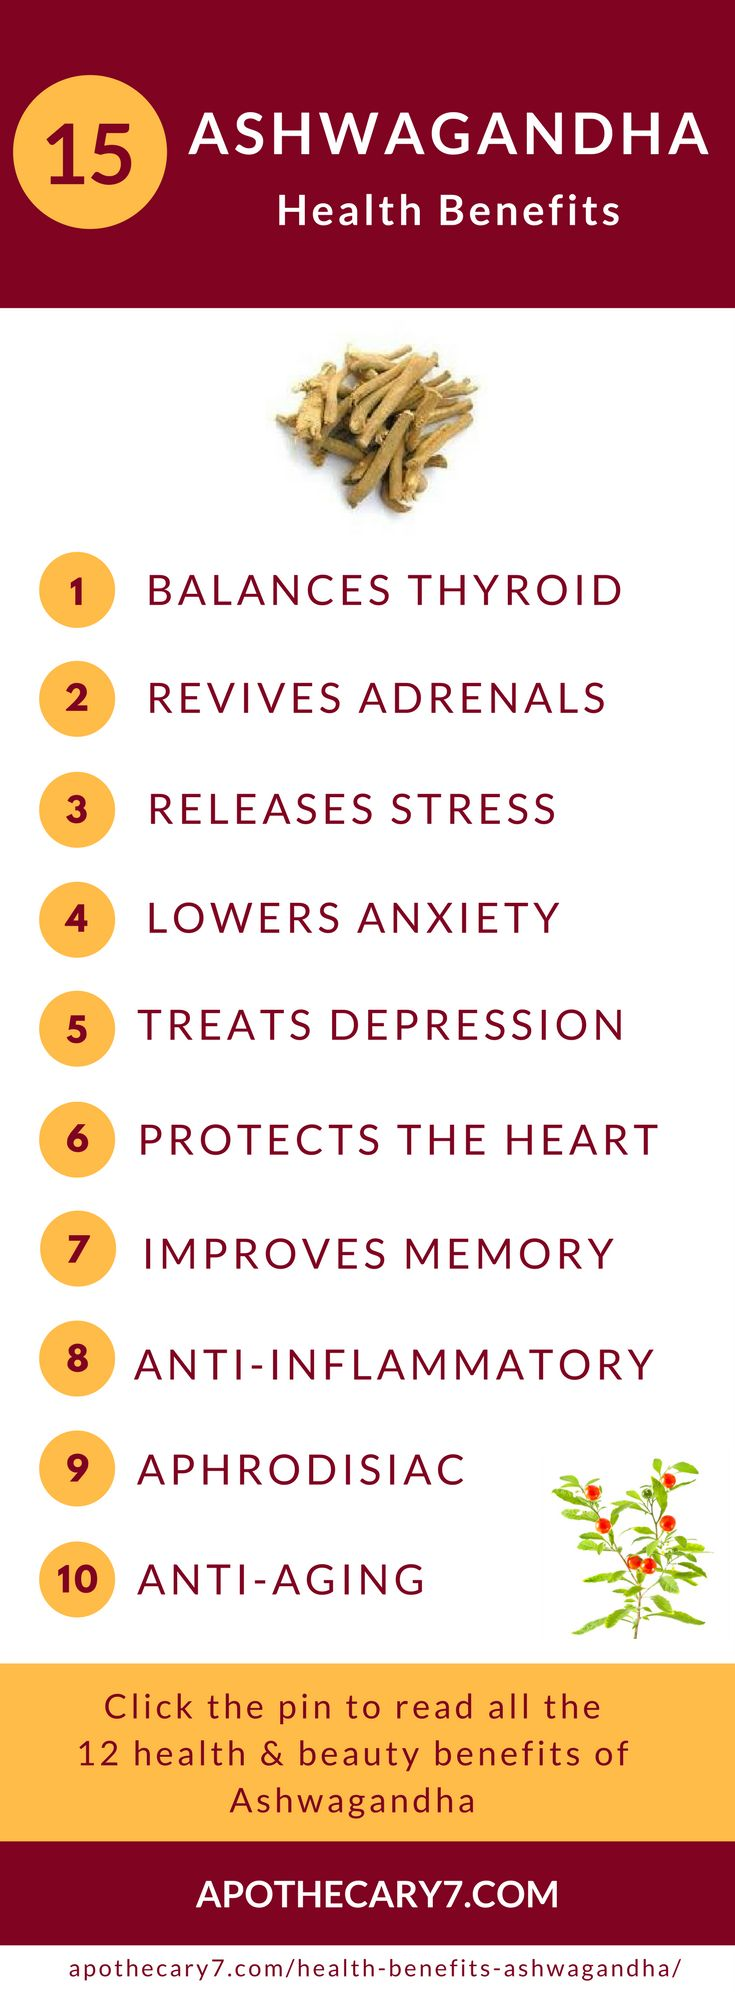 Ashwagandha is known as an Ayurvedic super herb with good reason. In this article you'll learn 15 power Ashwangandha benefits that will rock your world.